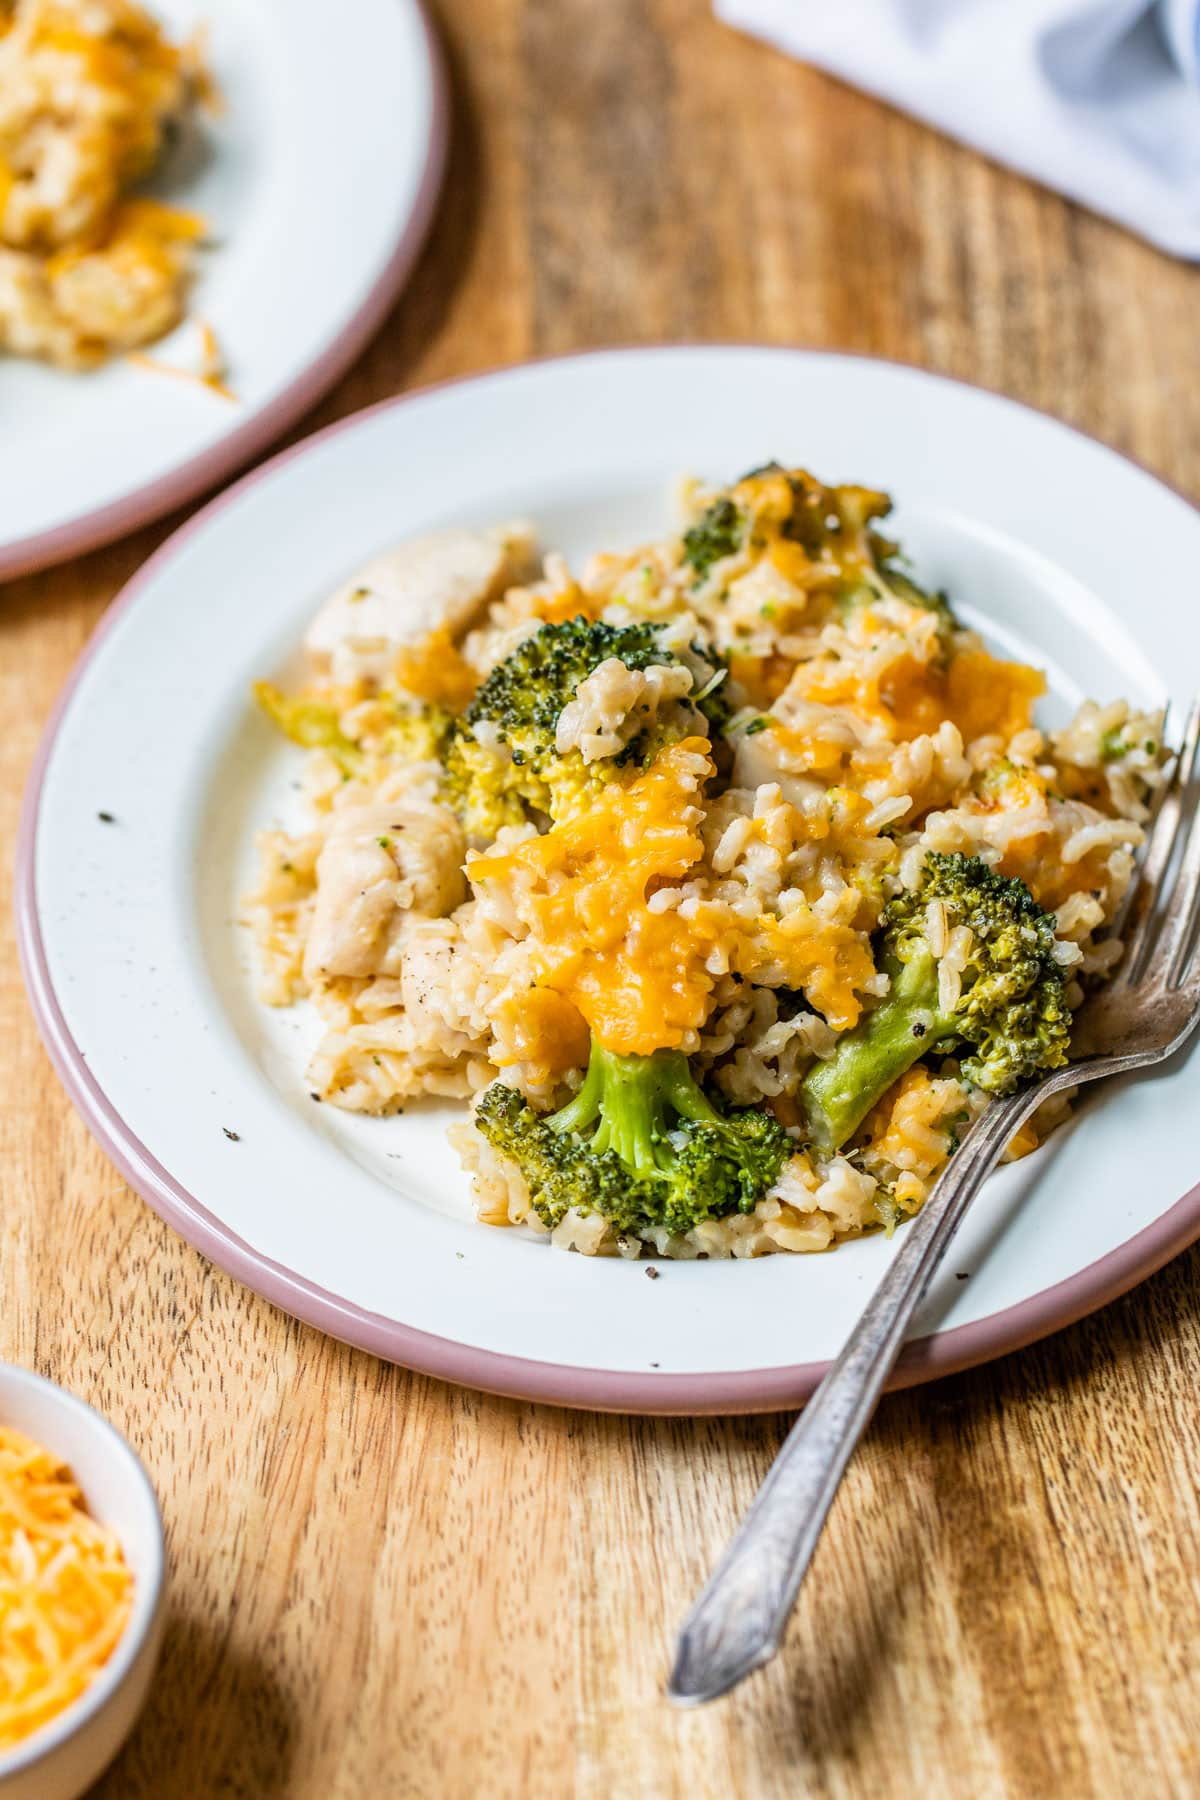 Cheesy chicken broccoli rice casserole served on a plate